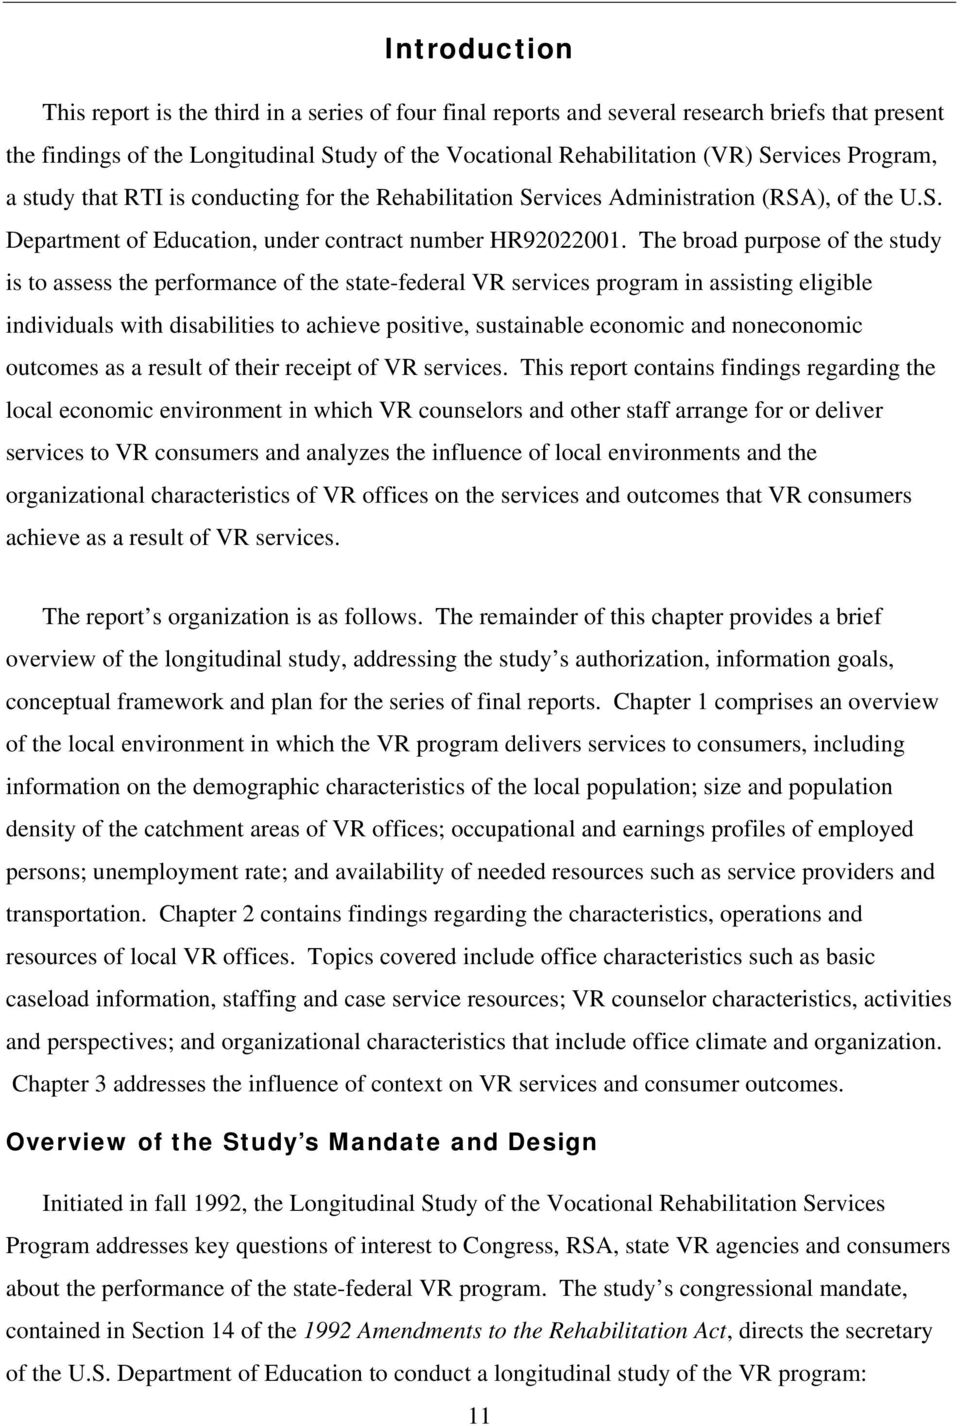 The broad purpose of the study is to assess the performance of the state-federal VR services program in assisting eligible individuals with disabilities to achieve positive, sustainable economic and